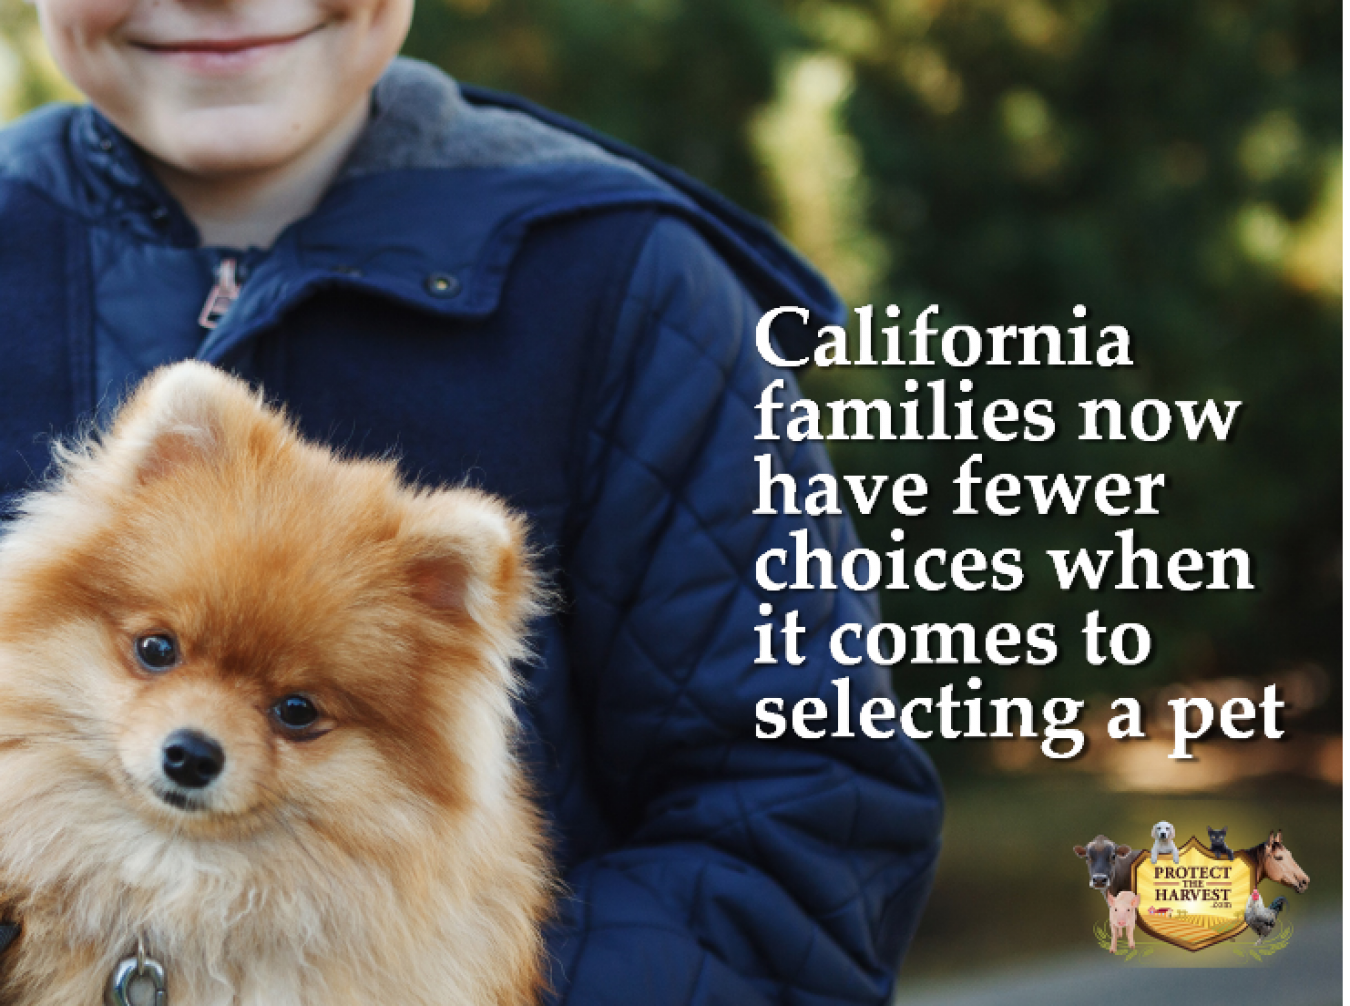 CA - AB 485 Follow Up - Governor Brown Signs Bill That Restricts the Rights of Pet Owners